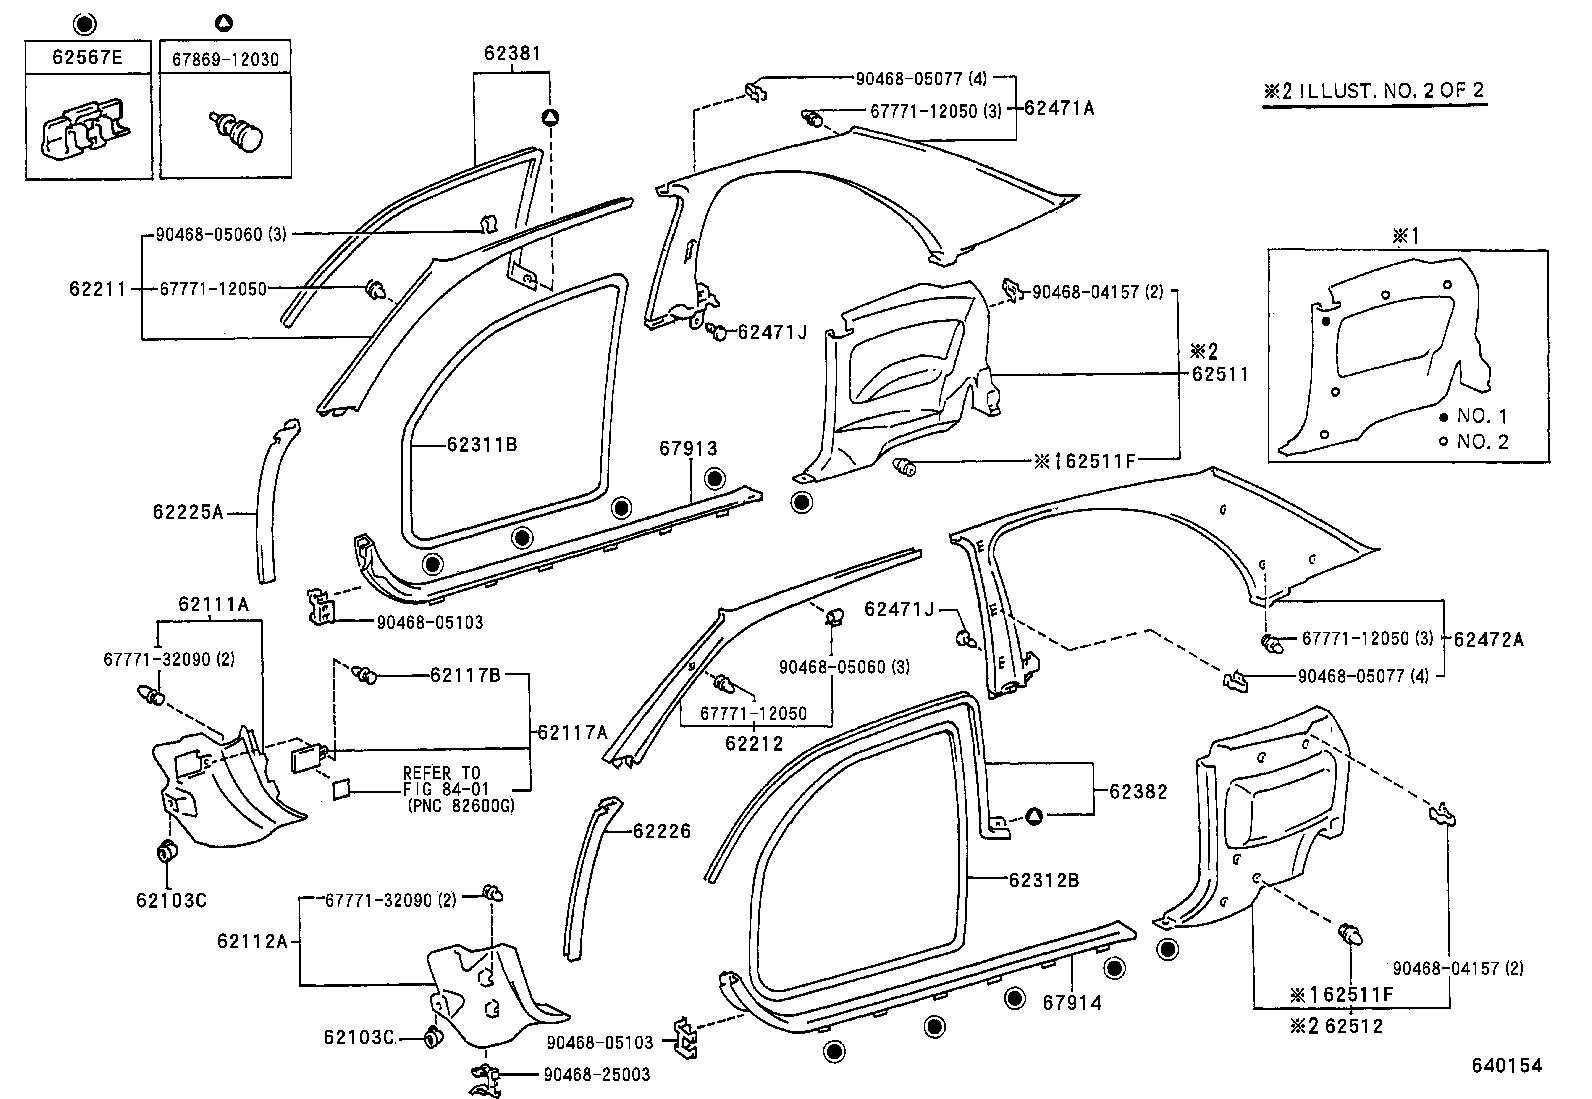 2009 Toyota Corolla Body Parts Diagram